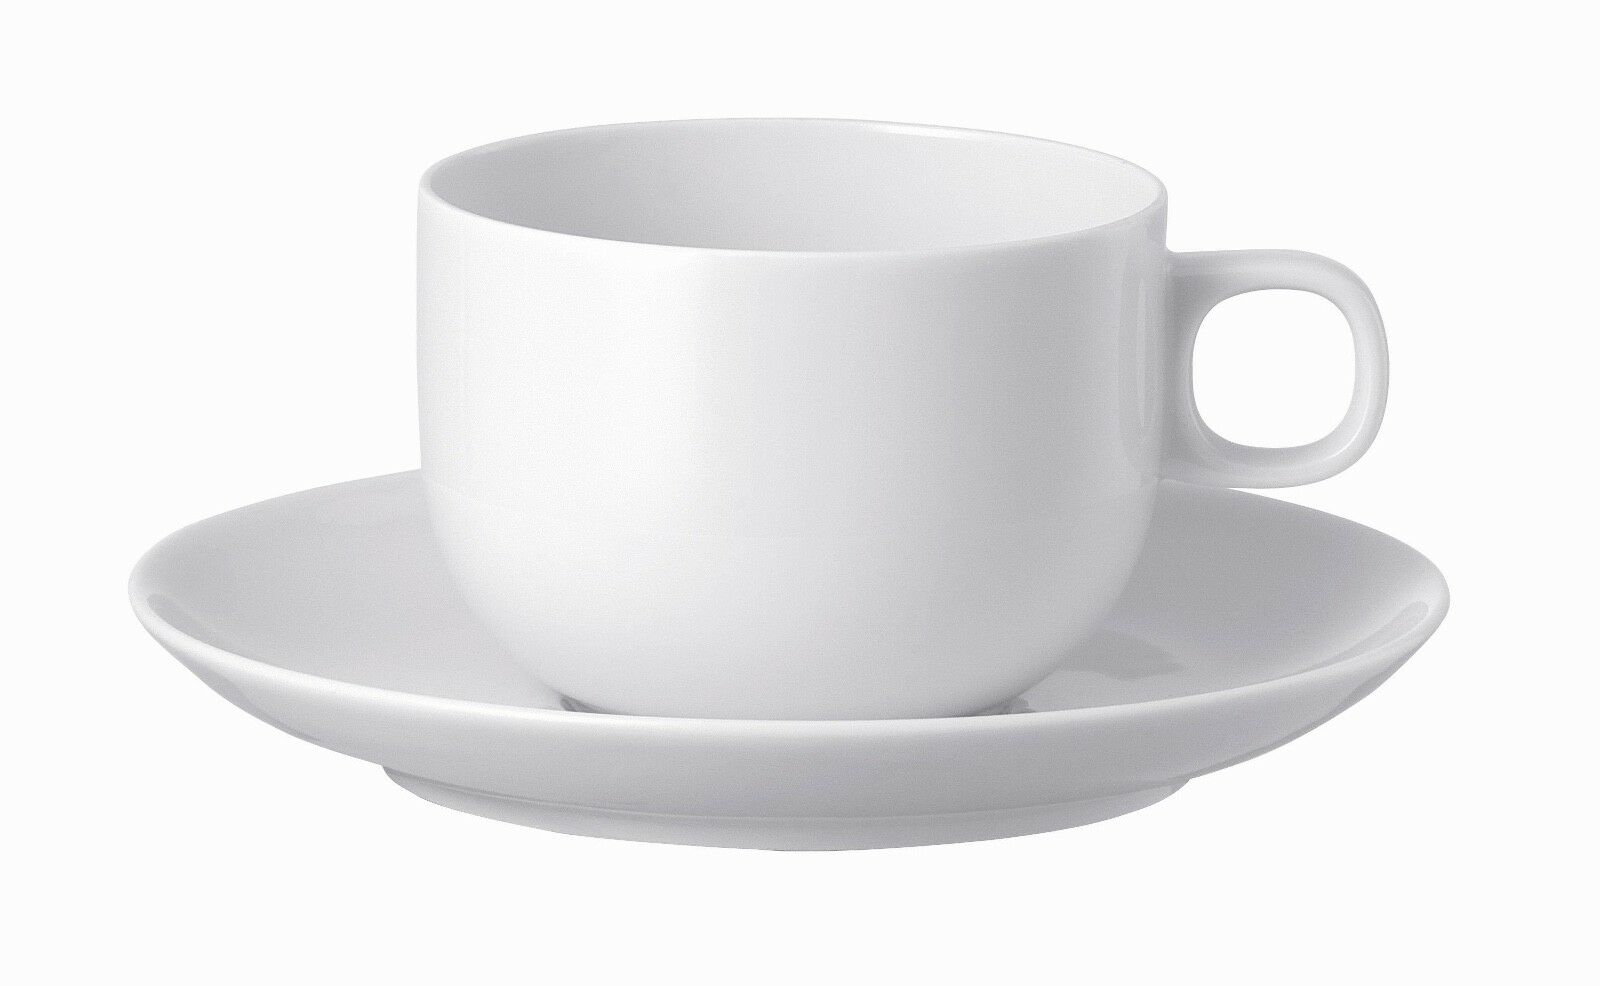 Rosenthal 'Moon' blanc Coffee Cup & Saucer Sets (6)